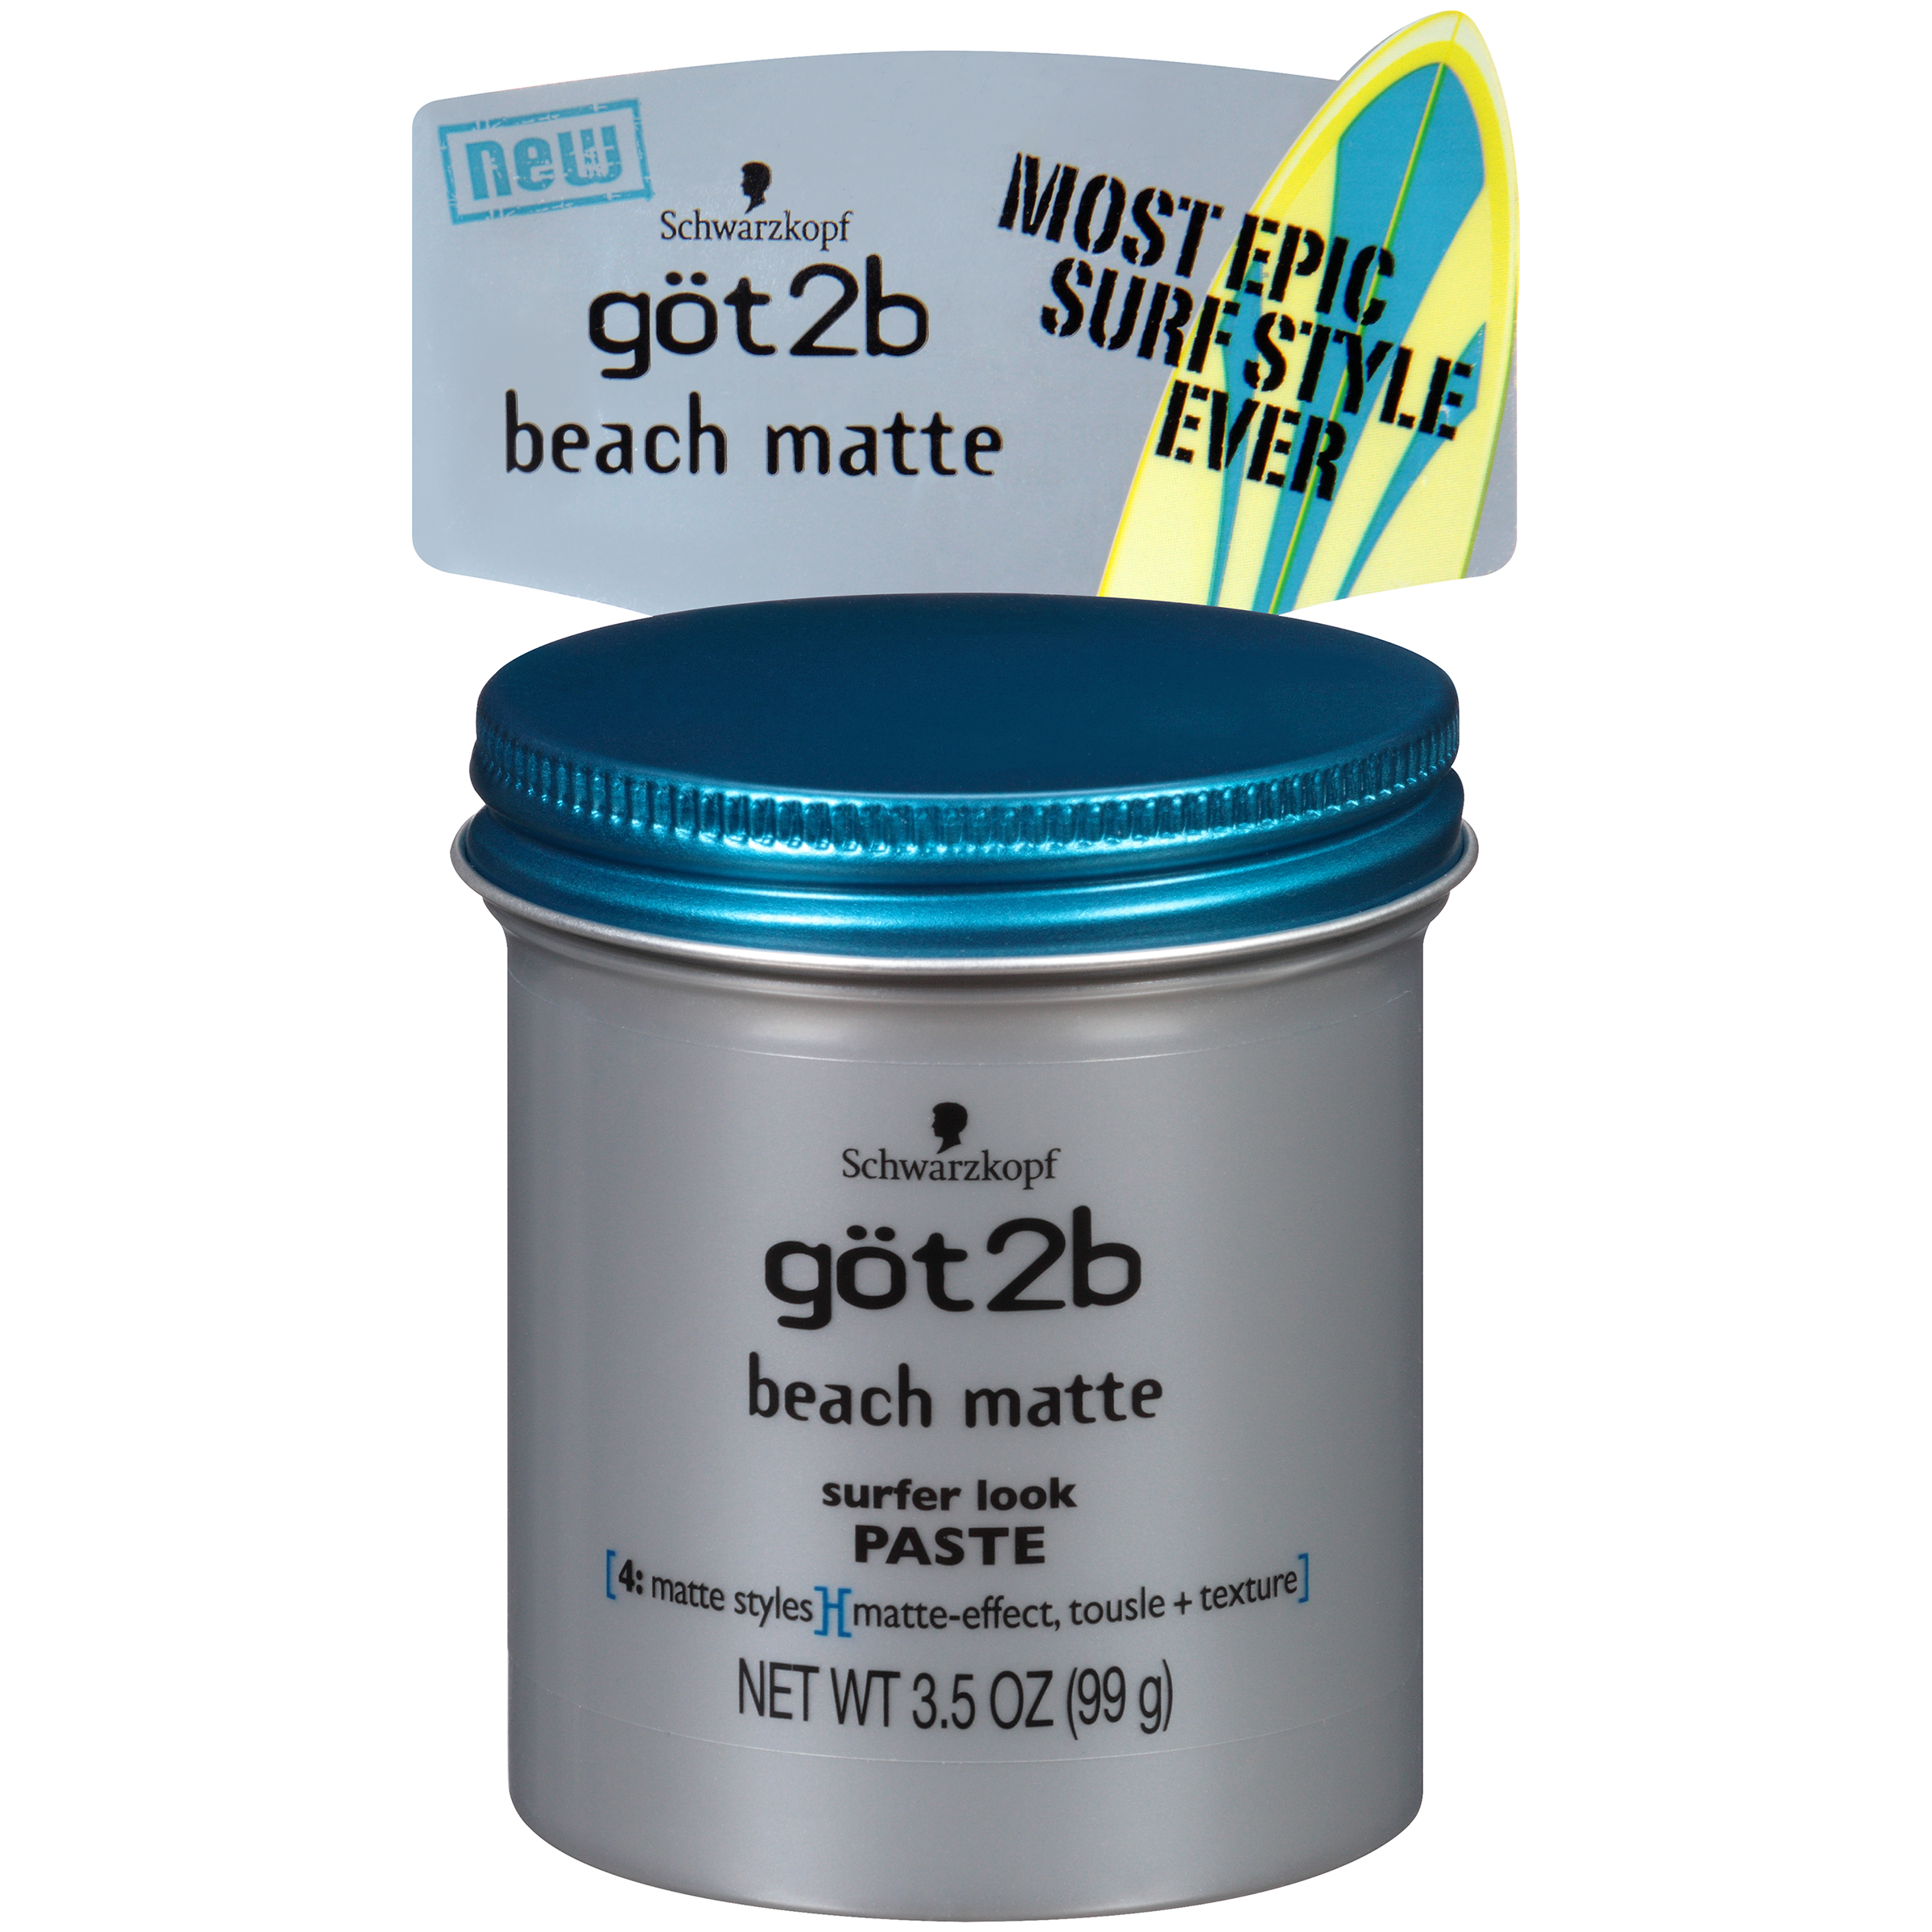 Got2B Beach Matte Surfer Look Hair Paste, 3.5 Ounce